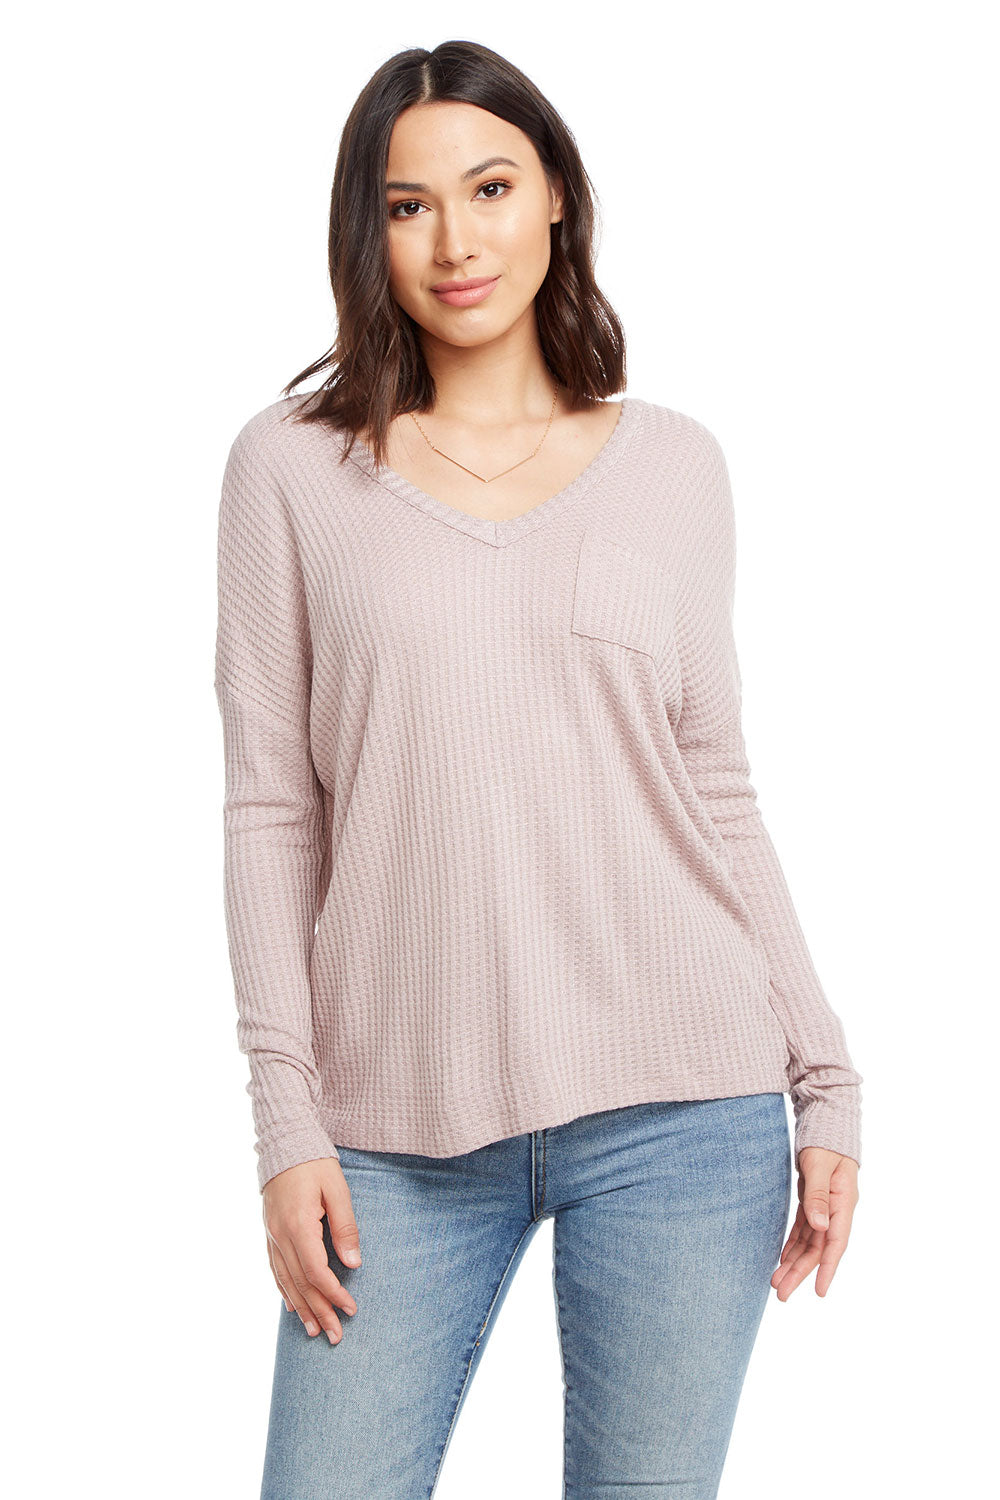 Thermal Long Sleeve Double V Drop Shoulder Pocket Tee WOMENS chaserbrand4.myshopify.com